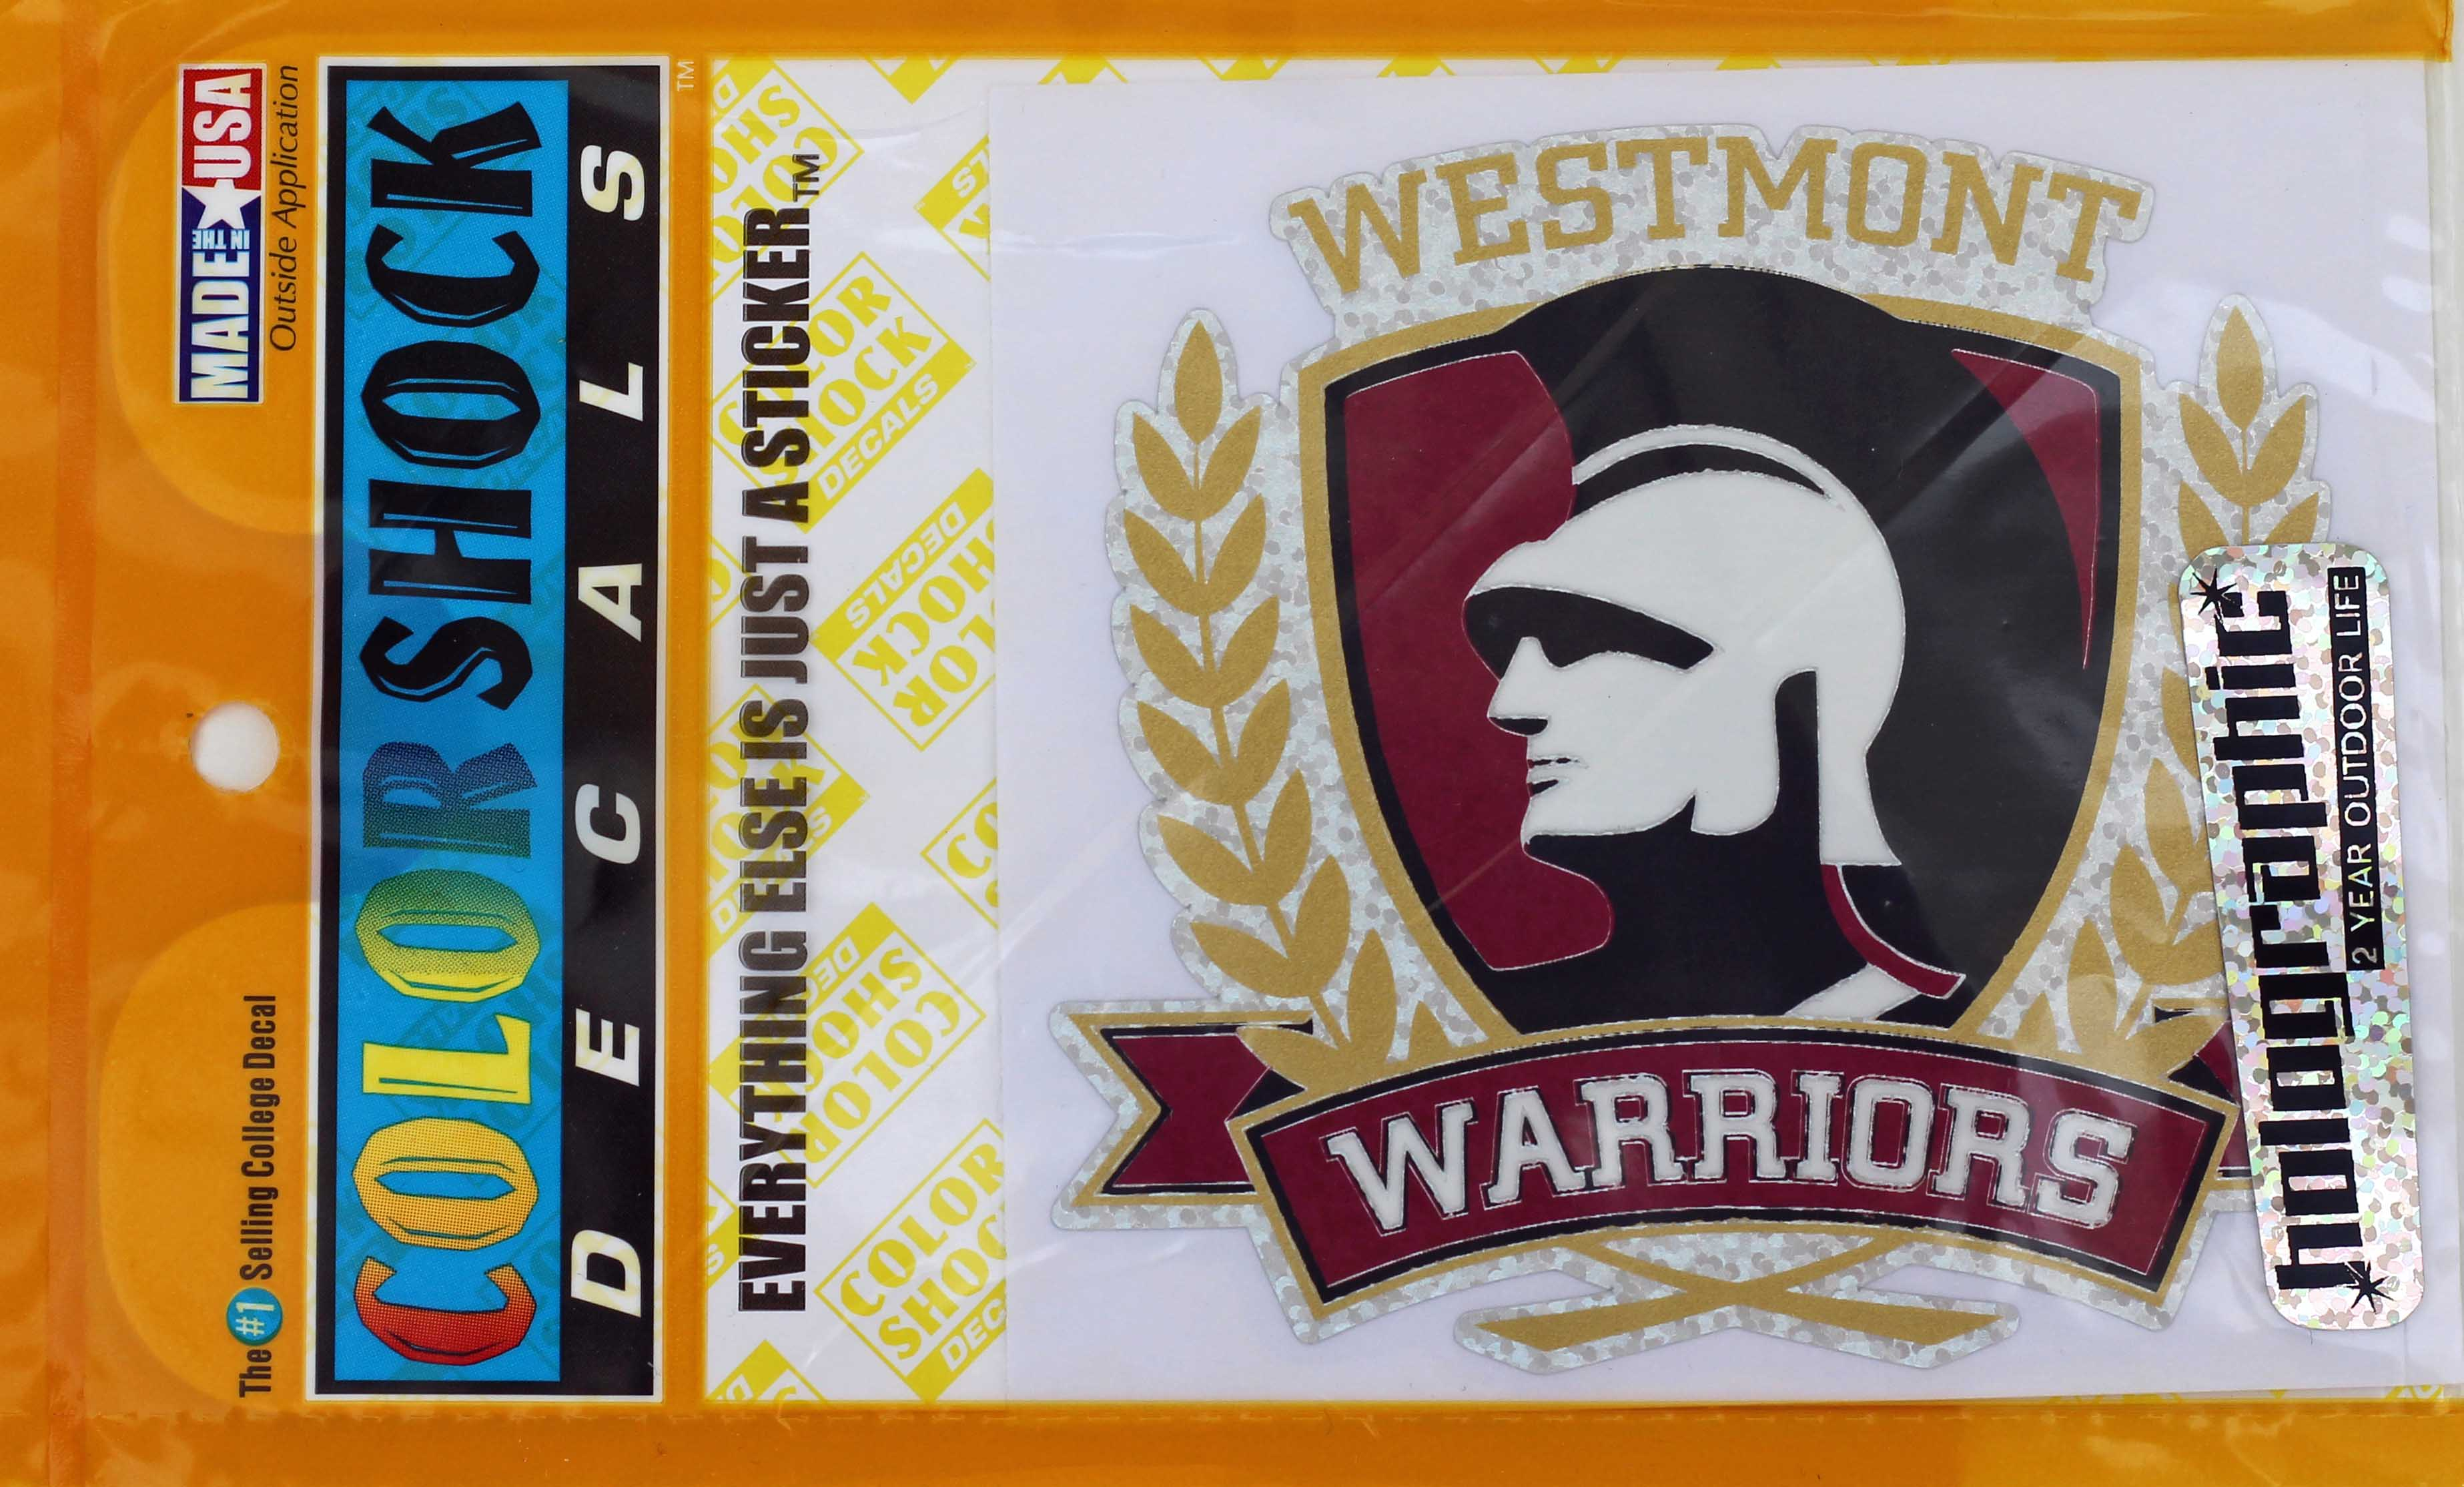 Image for the Color Shock Holographic Warrior Decal  product